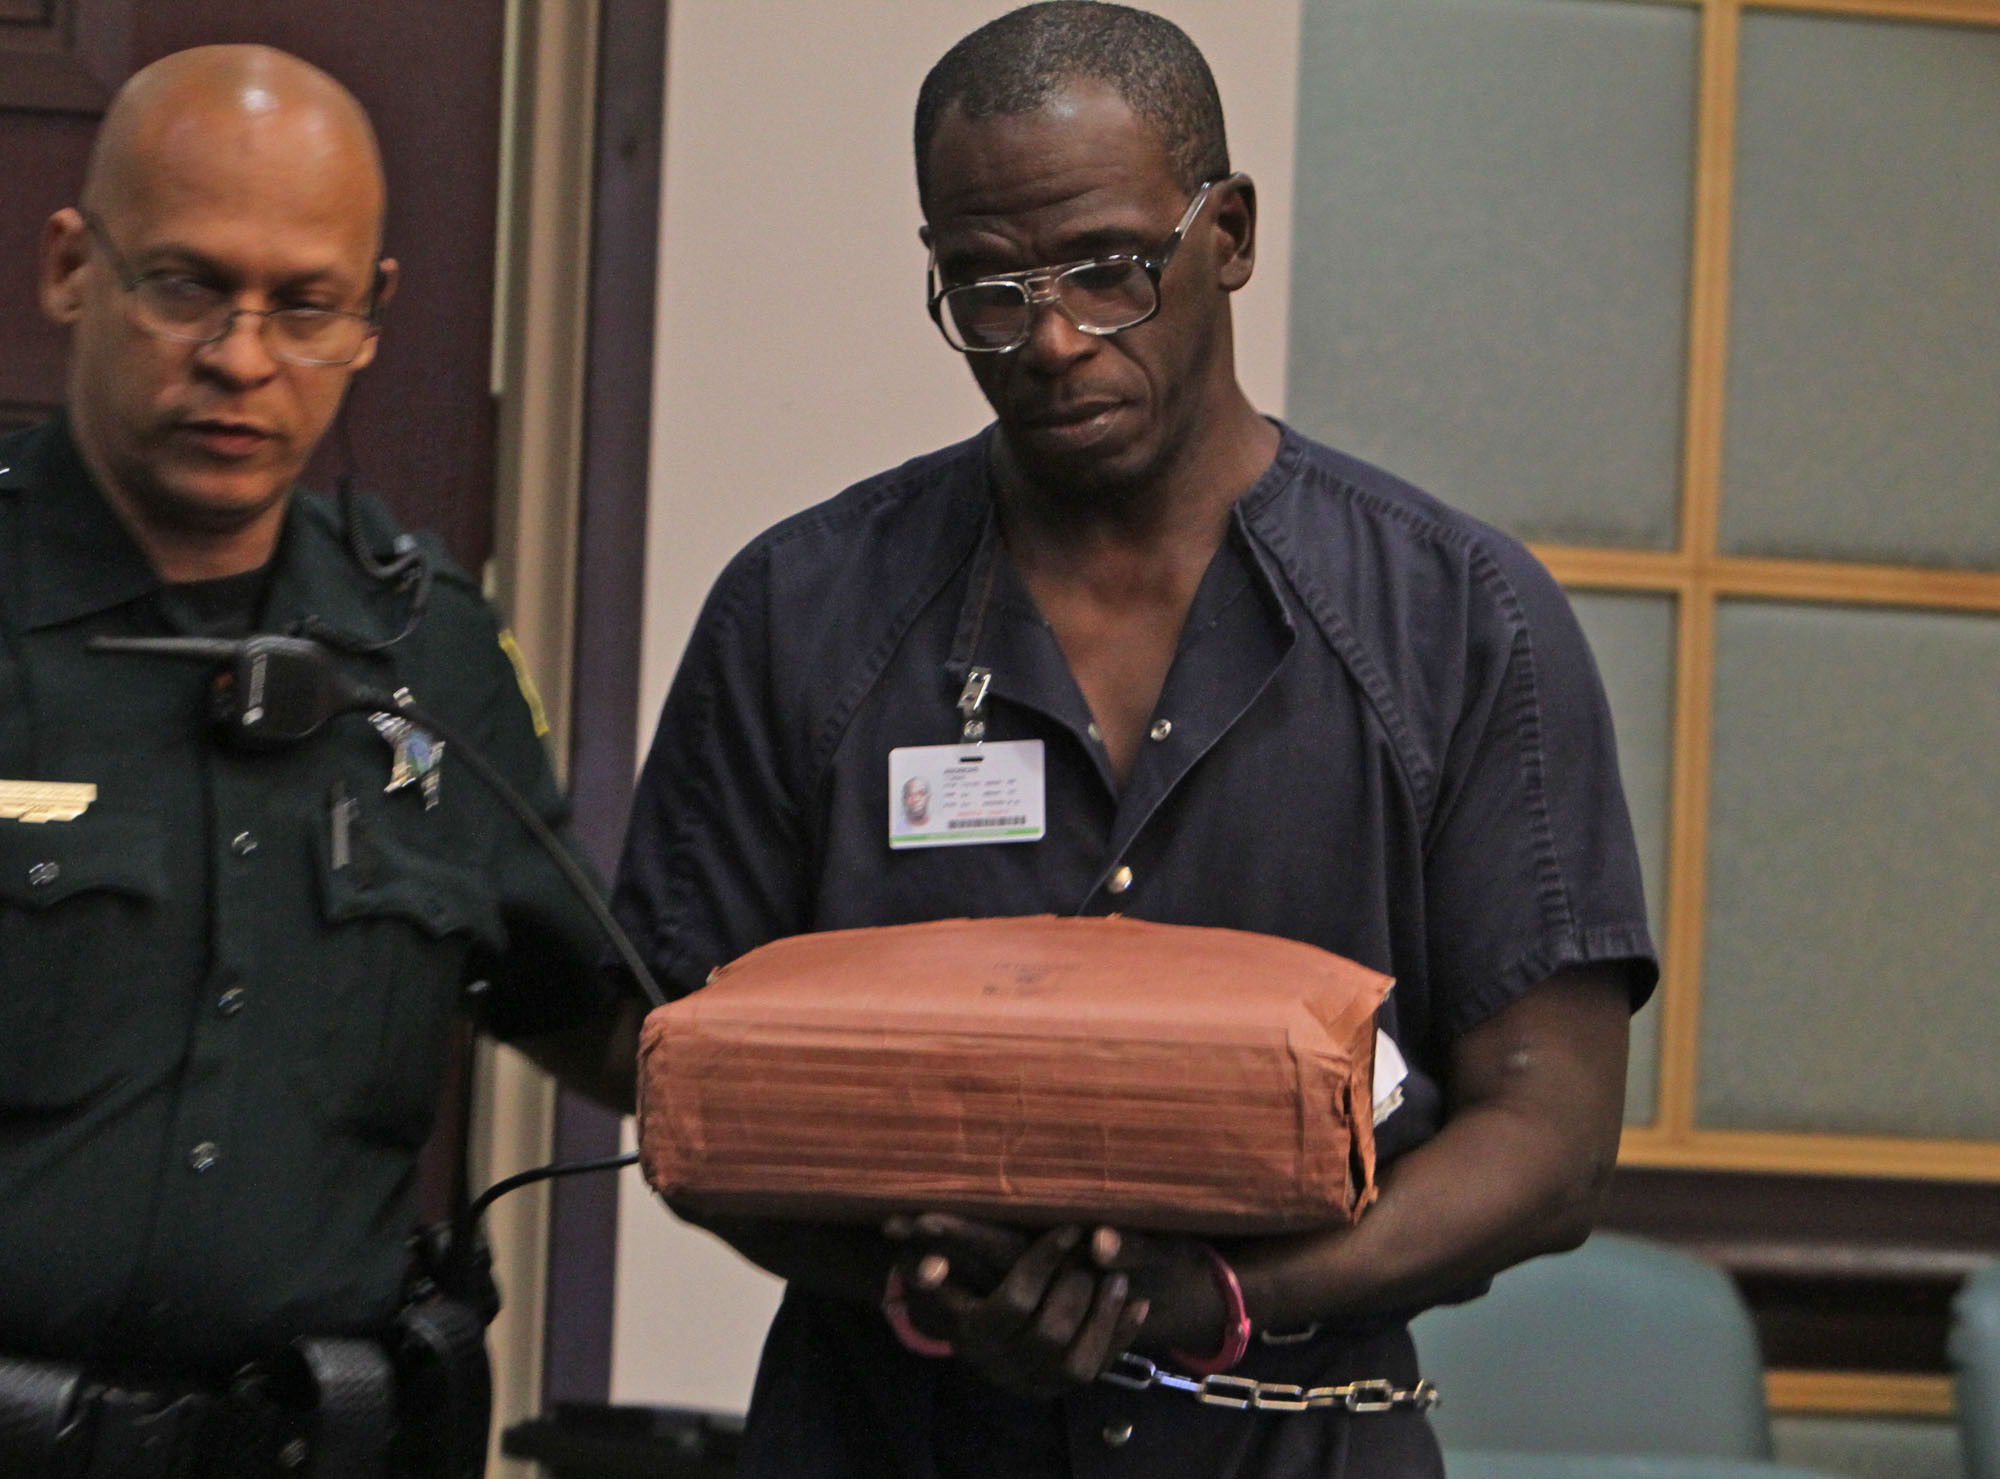 Rapist Tommie Lee Andrews, the first man convicted using DNA evidence, represents himself  during a civil commitment hearing.